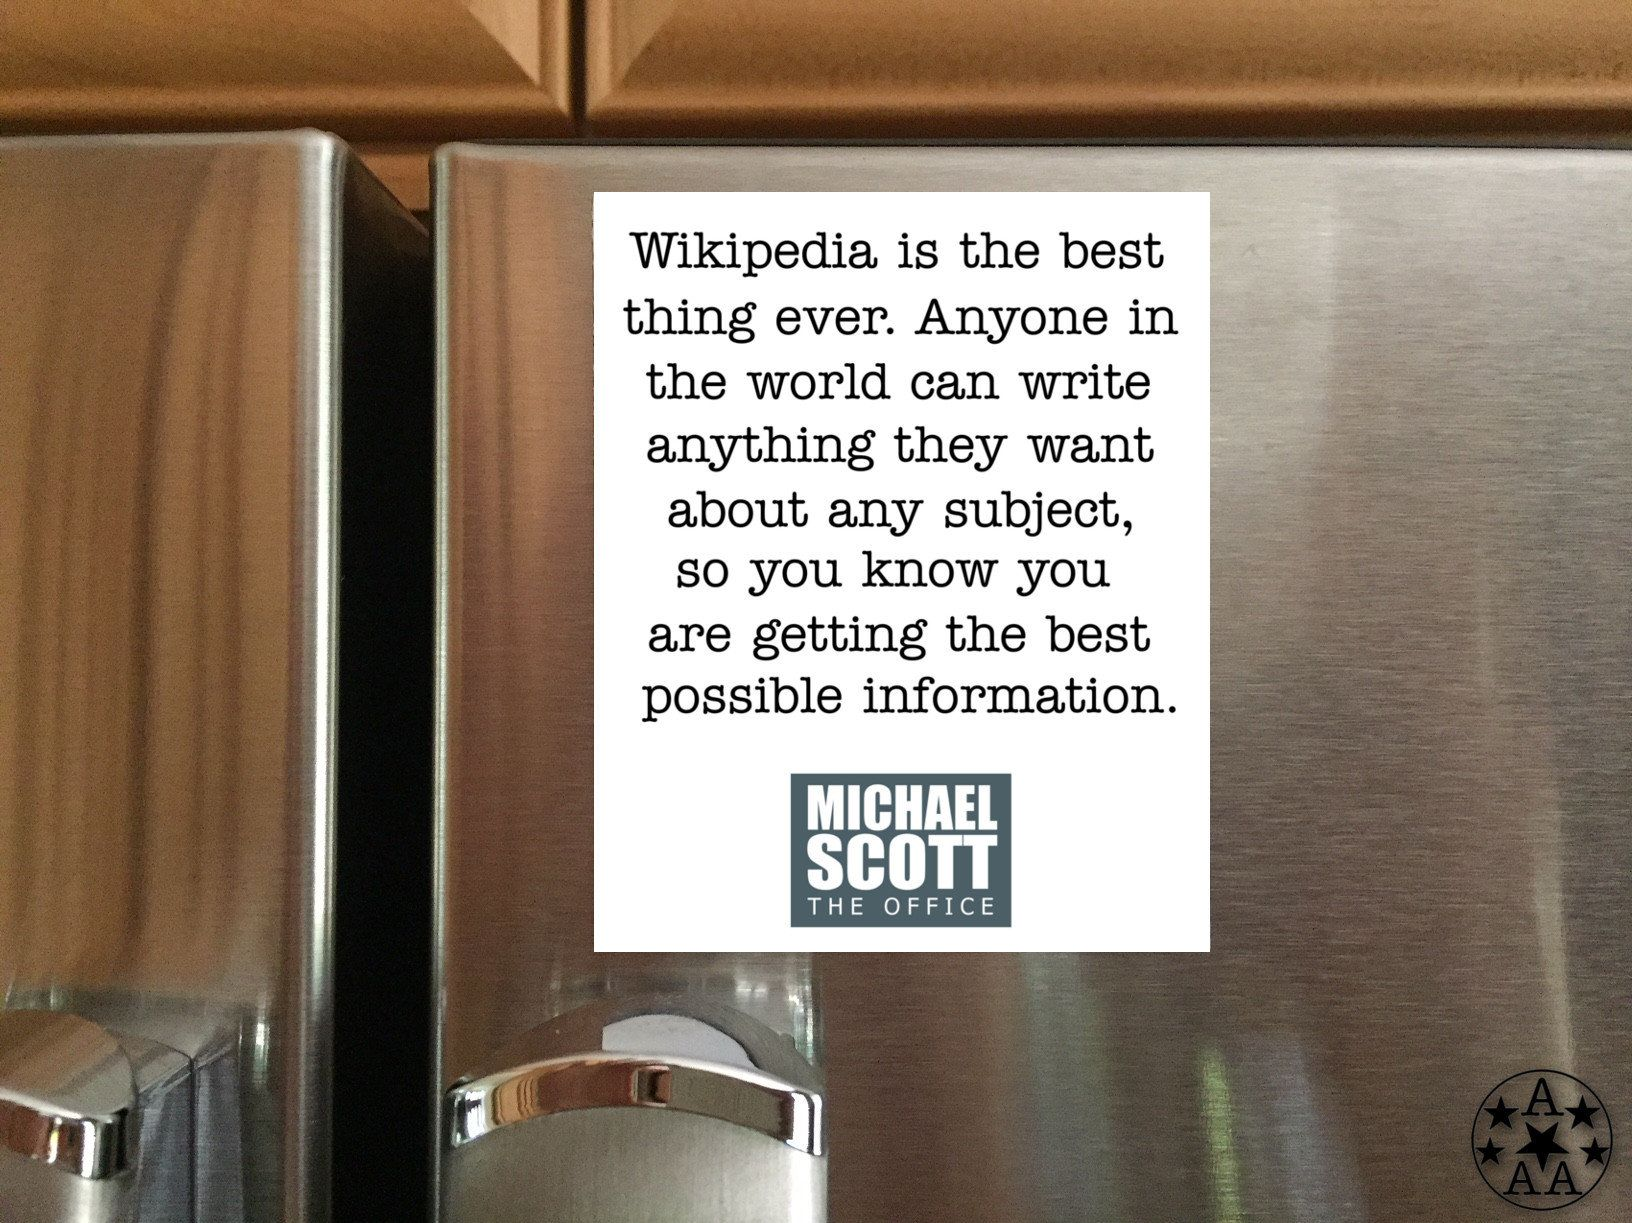 Wikipedia Quote Magnet Fridge Magnet Michael Scott Quote Etsy Magnet Quotes Fridge Magnets Birthday Cards For Friends